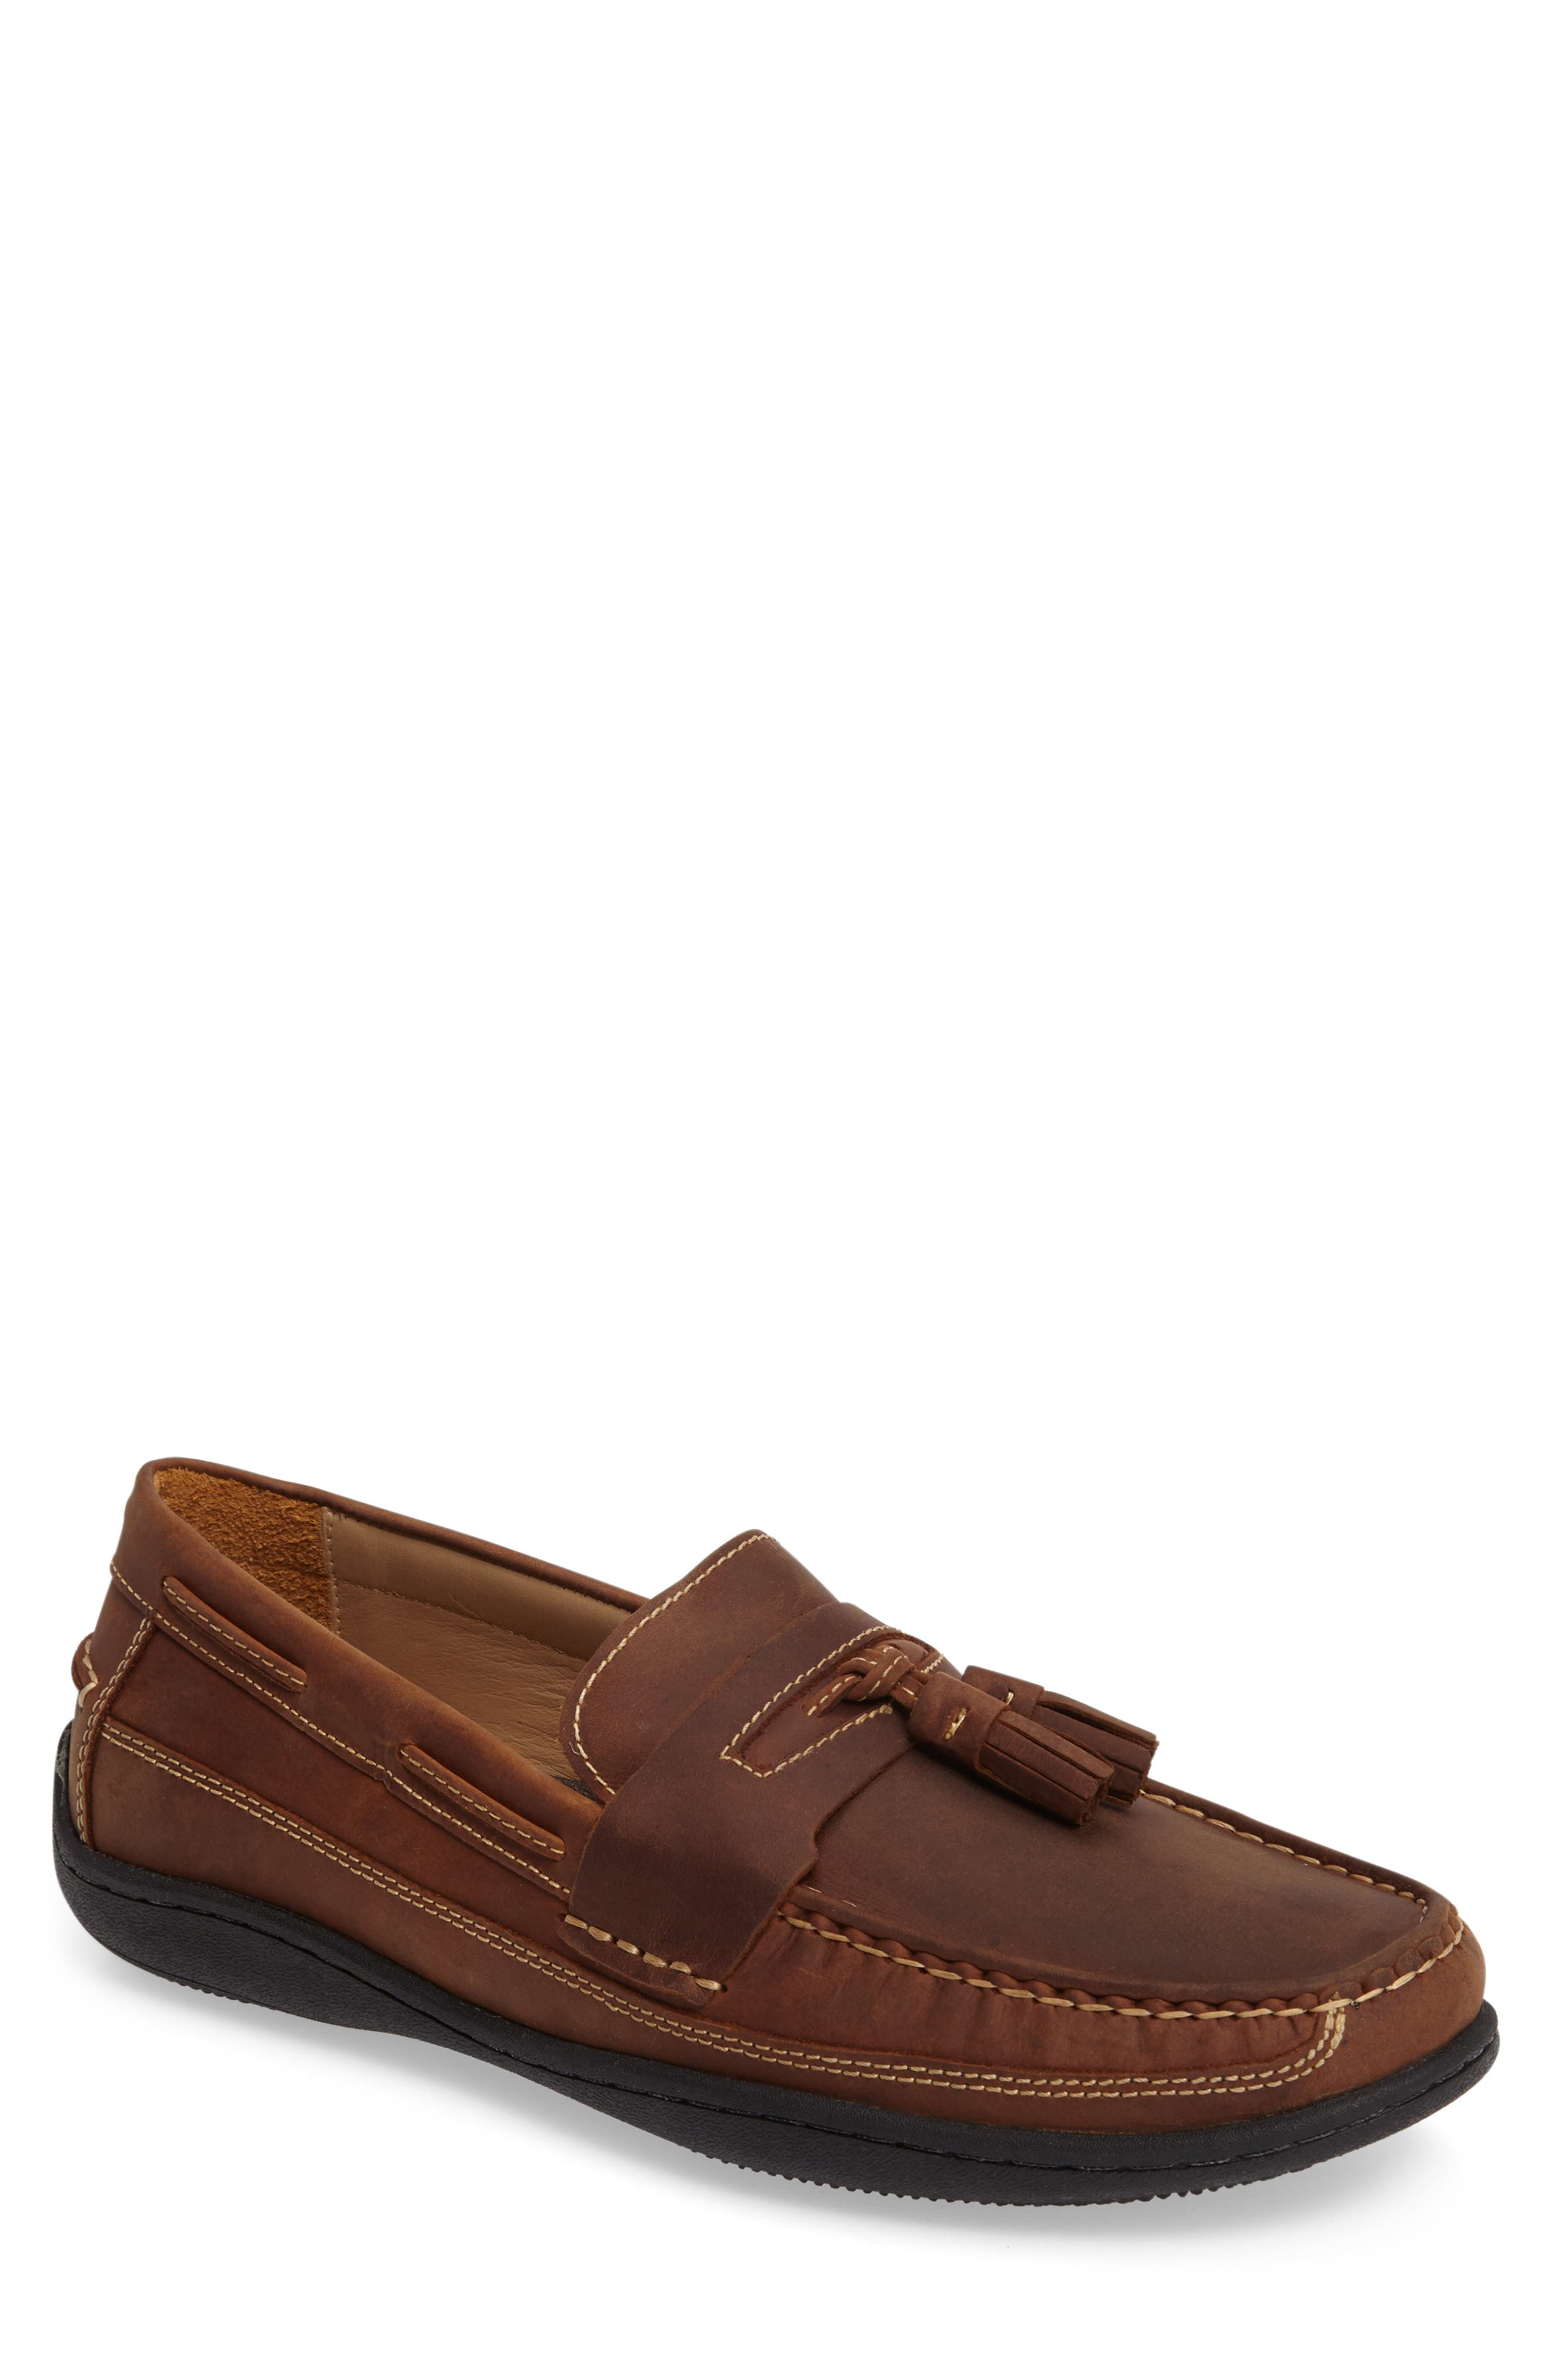 Fowler Tasseled Loafer,                             Main thumbnail 1, color,                             TAN LEATHER